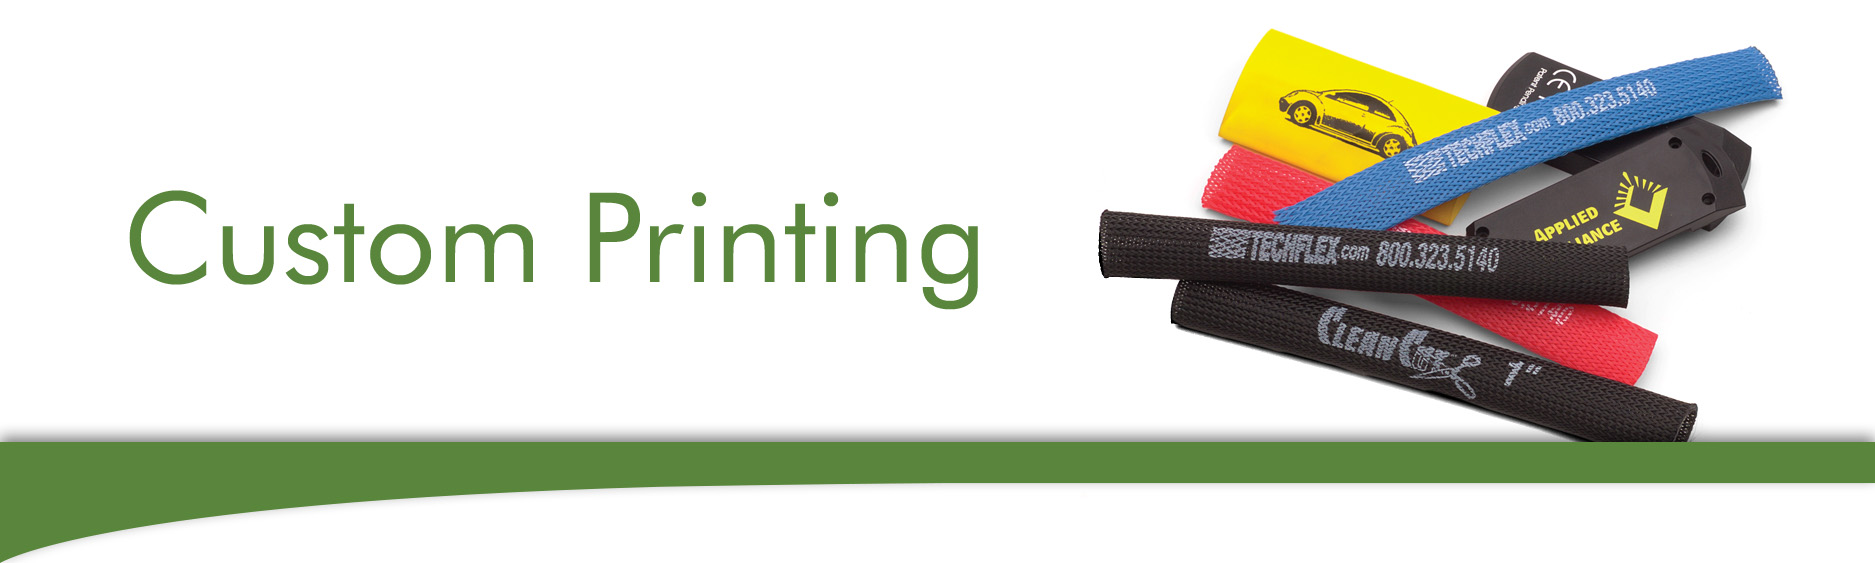 custom printing services